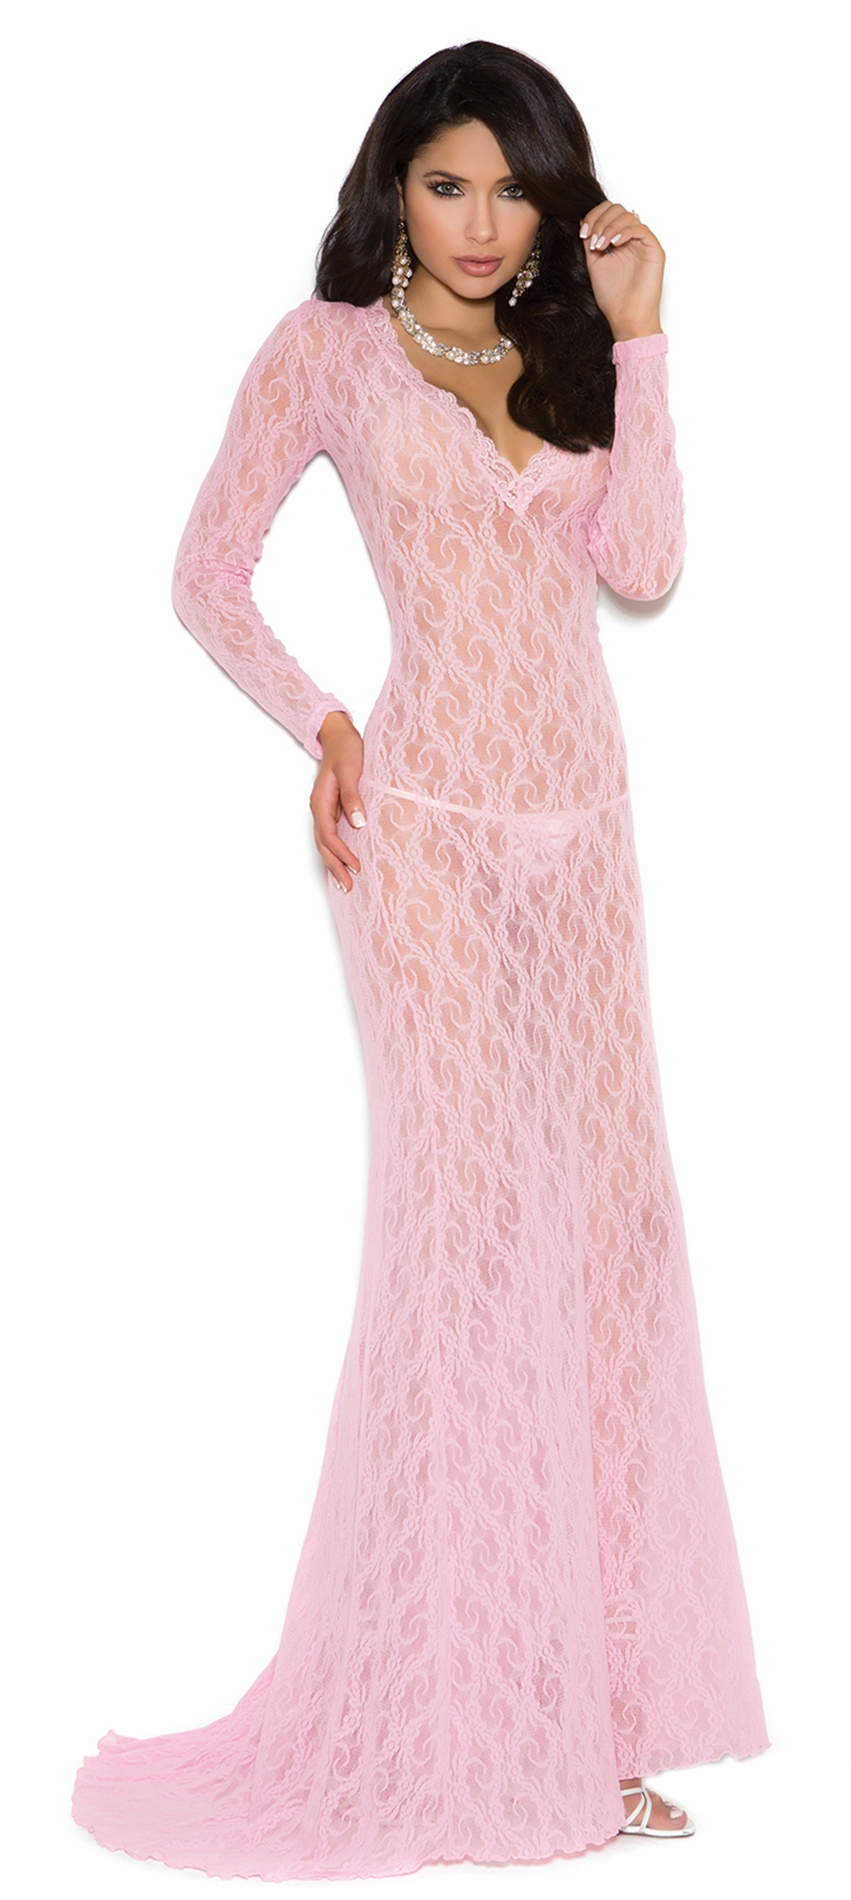 1949 Baby Pink Long Sleeve Lace Gown with Deep V Front and Train